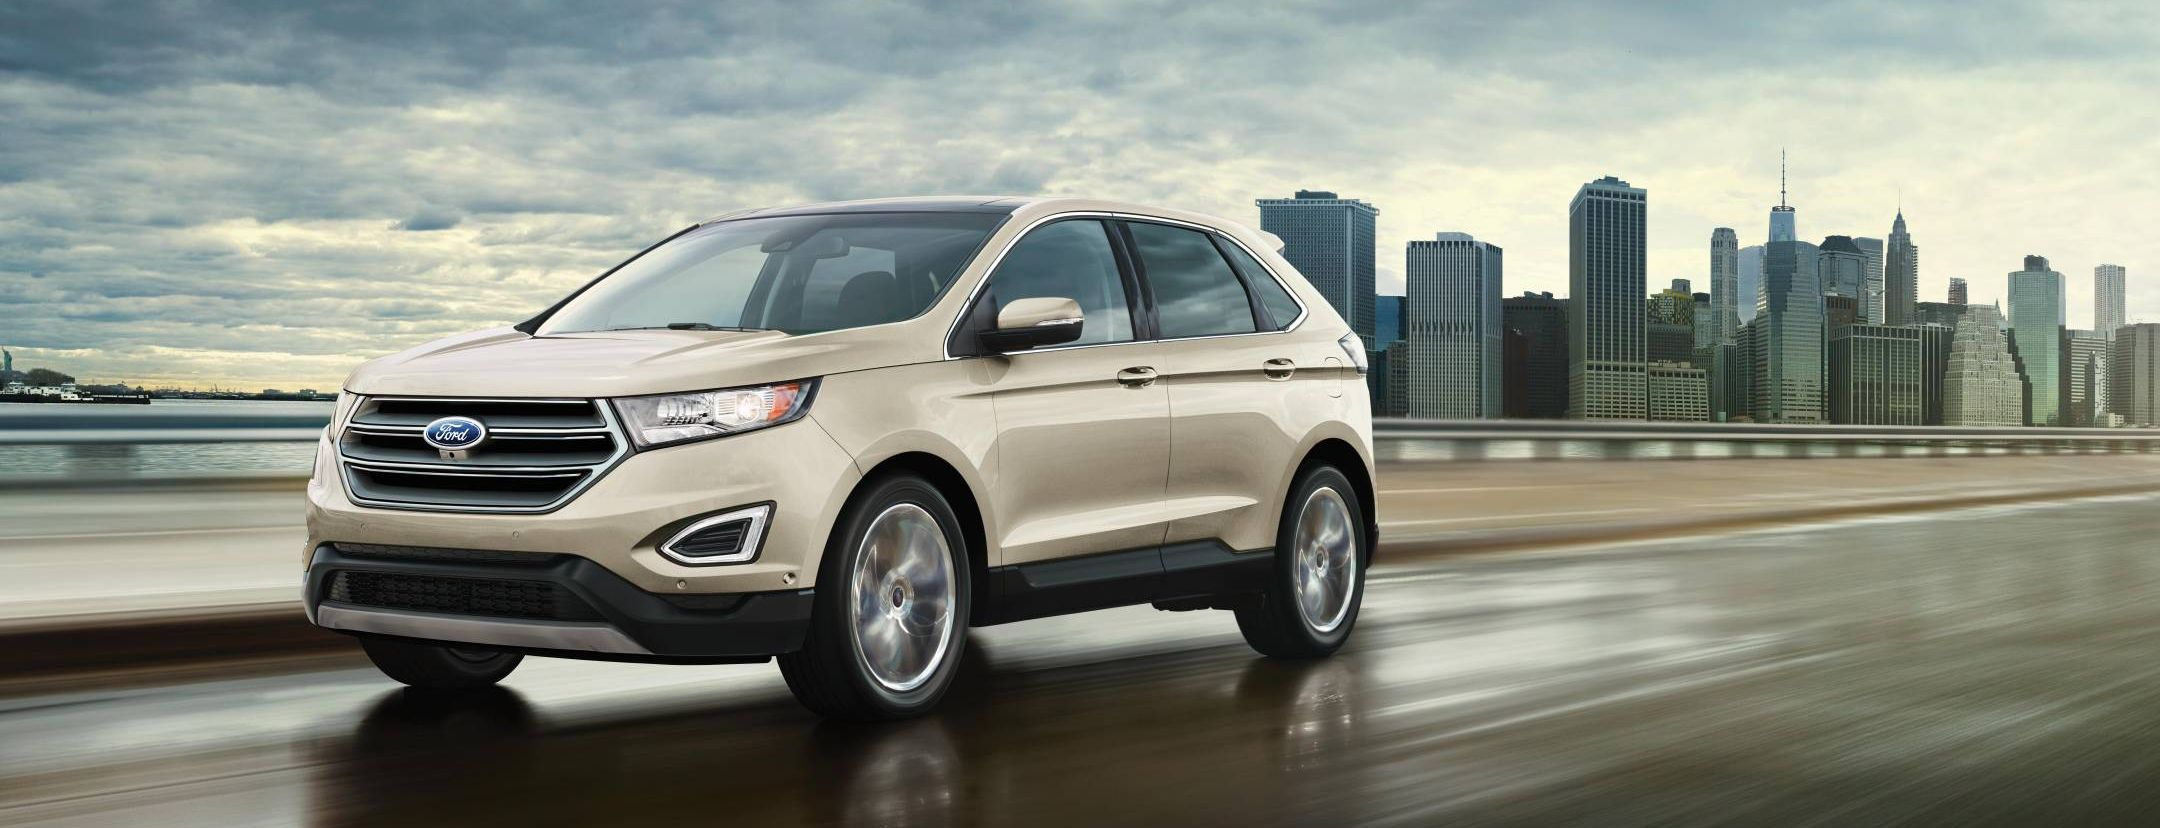 lease titanium awd ford drive review ecoboost en car reviews edge